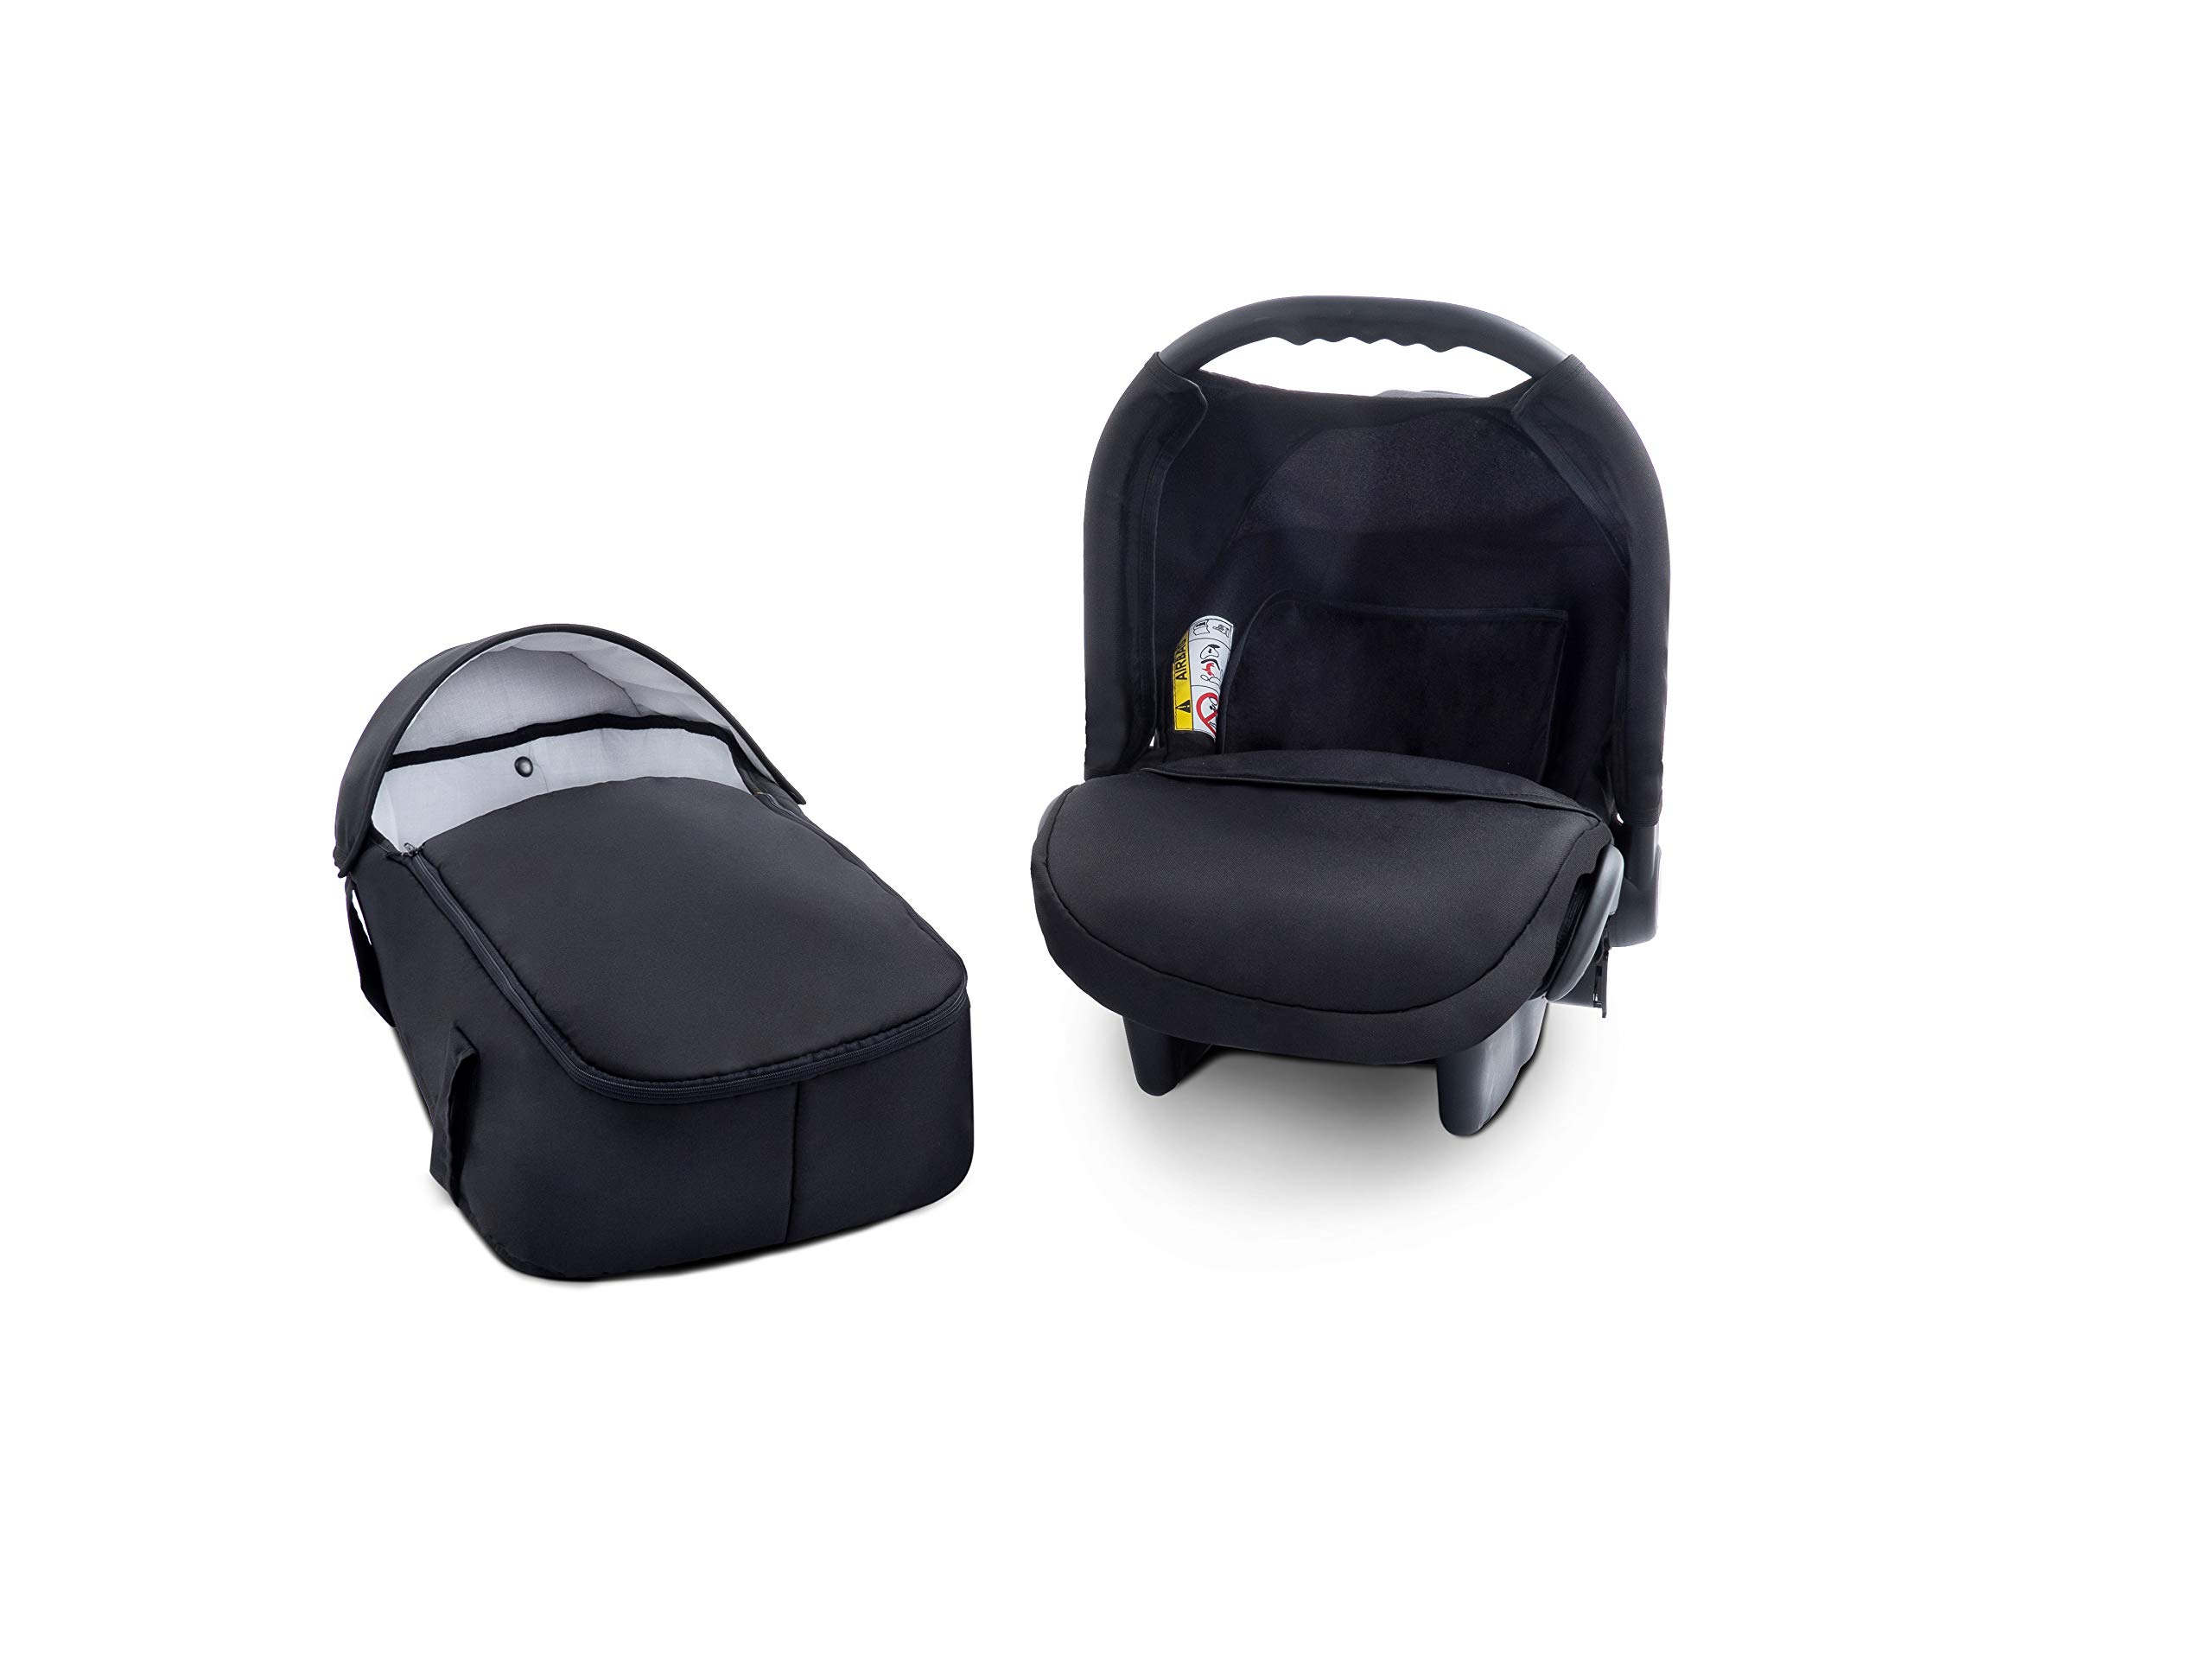 Baby Pram Zeo Mio 3in1 Set - All You Need! carrycot Gondola Buggy Sport Part Pushchair car seat (M1)  3 in 1 combination stroller complete set, with reversible handle to the buggy, child car seat or baby carriage Has 360 ° swiveling wheels, two-fold suspension, four-stage backrest, five-position adjustable footrest and a five-point safety belt The stroller can be easily converted into other functions and easy to transport 9